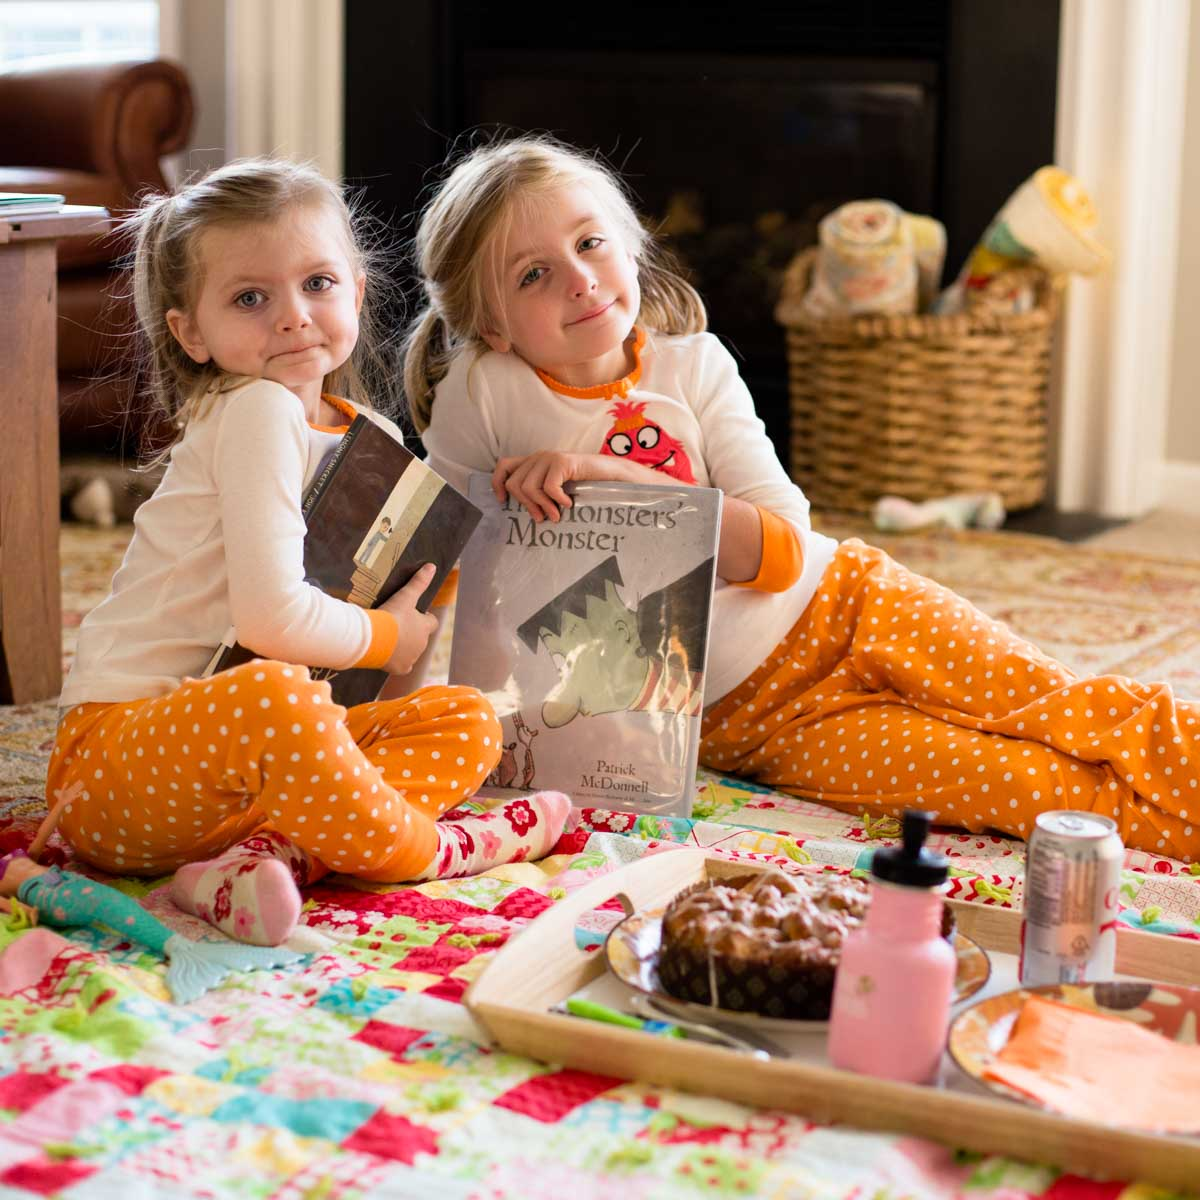 Two girls in Halloween jammies hold Halloween picture books and are sitting on the living room floor with breakfast treats.